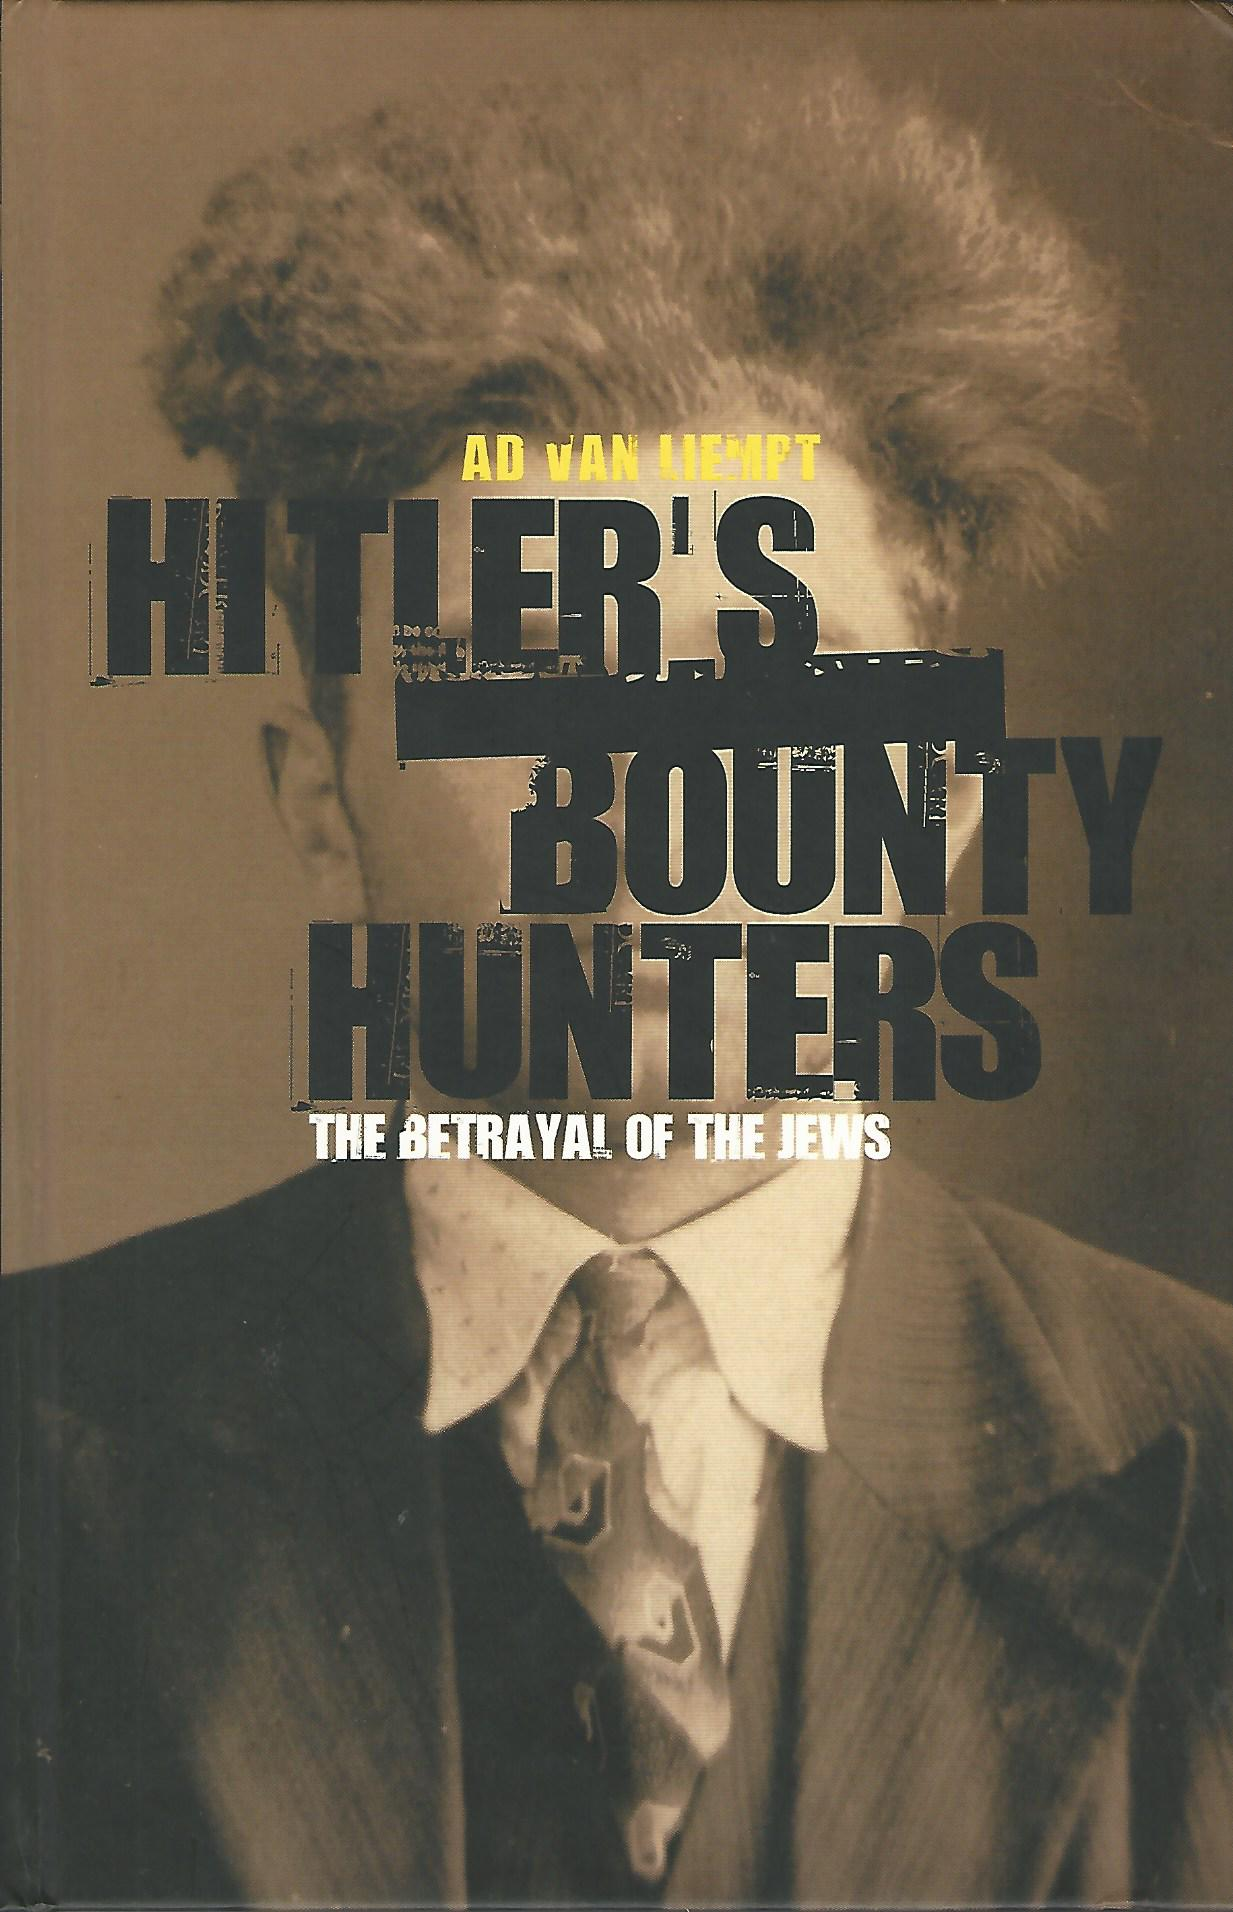 Image for Hitler's Bounty Hunters: The Betrayal of the Jews.